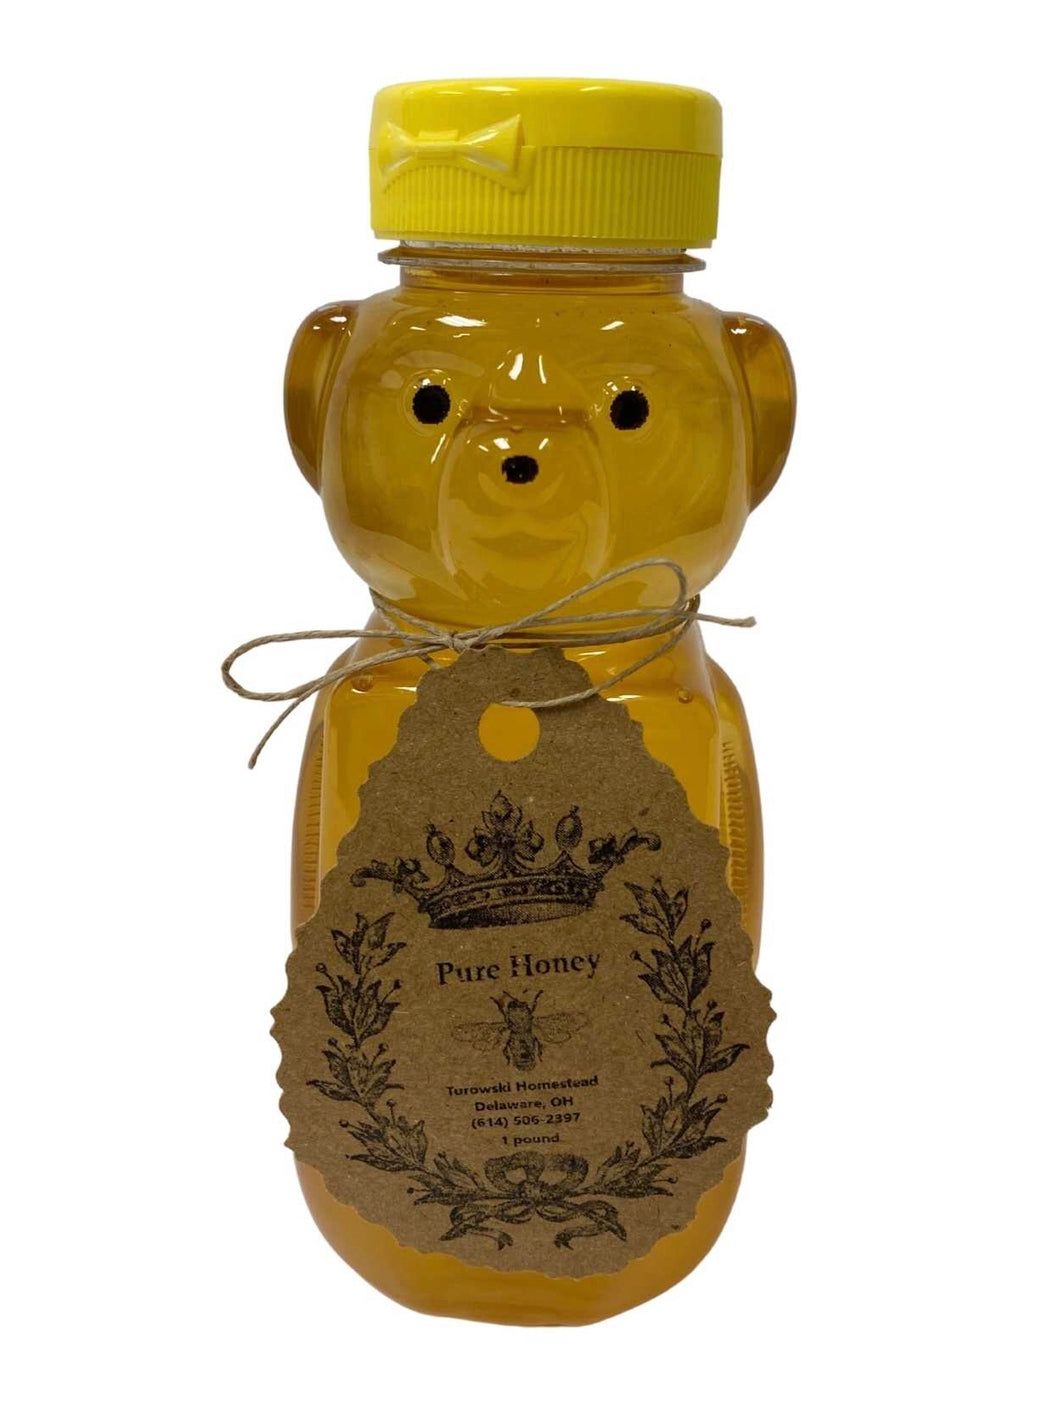 Turowski Local Honey Bear